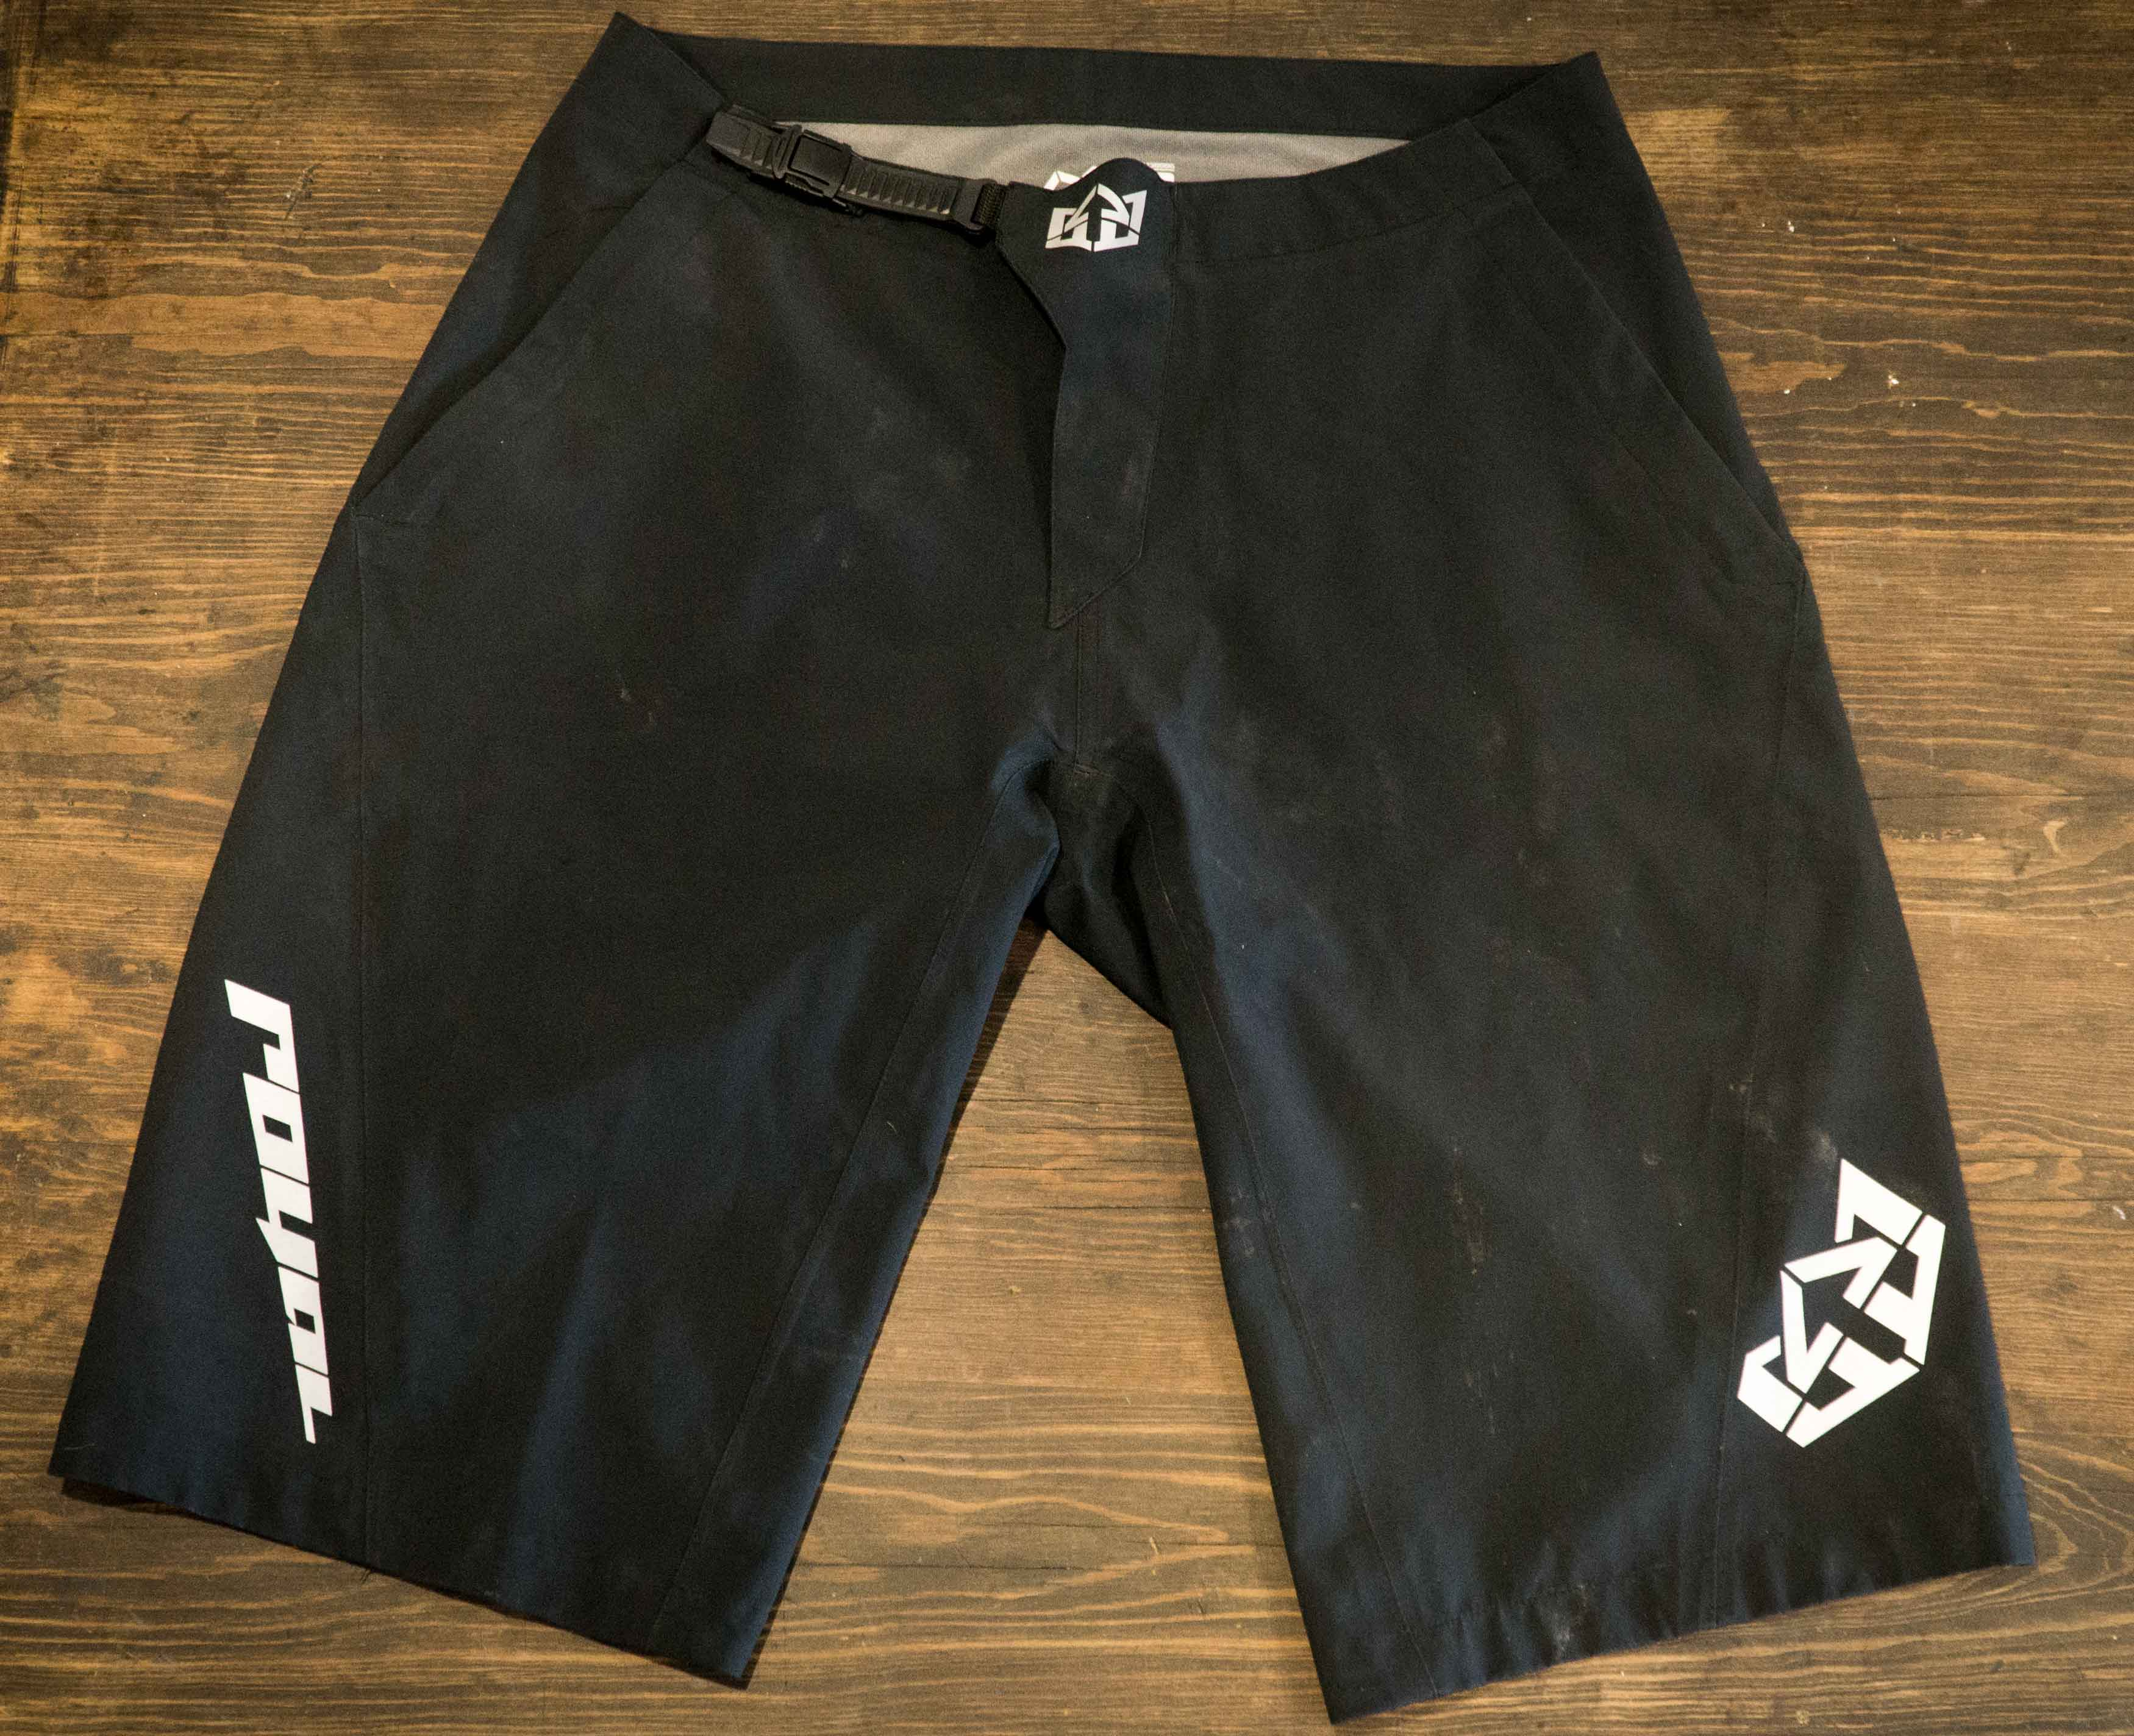 Royal Racing Storm Short Best Gifts for Mountain Bikers